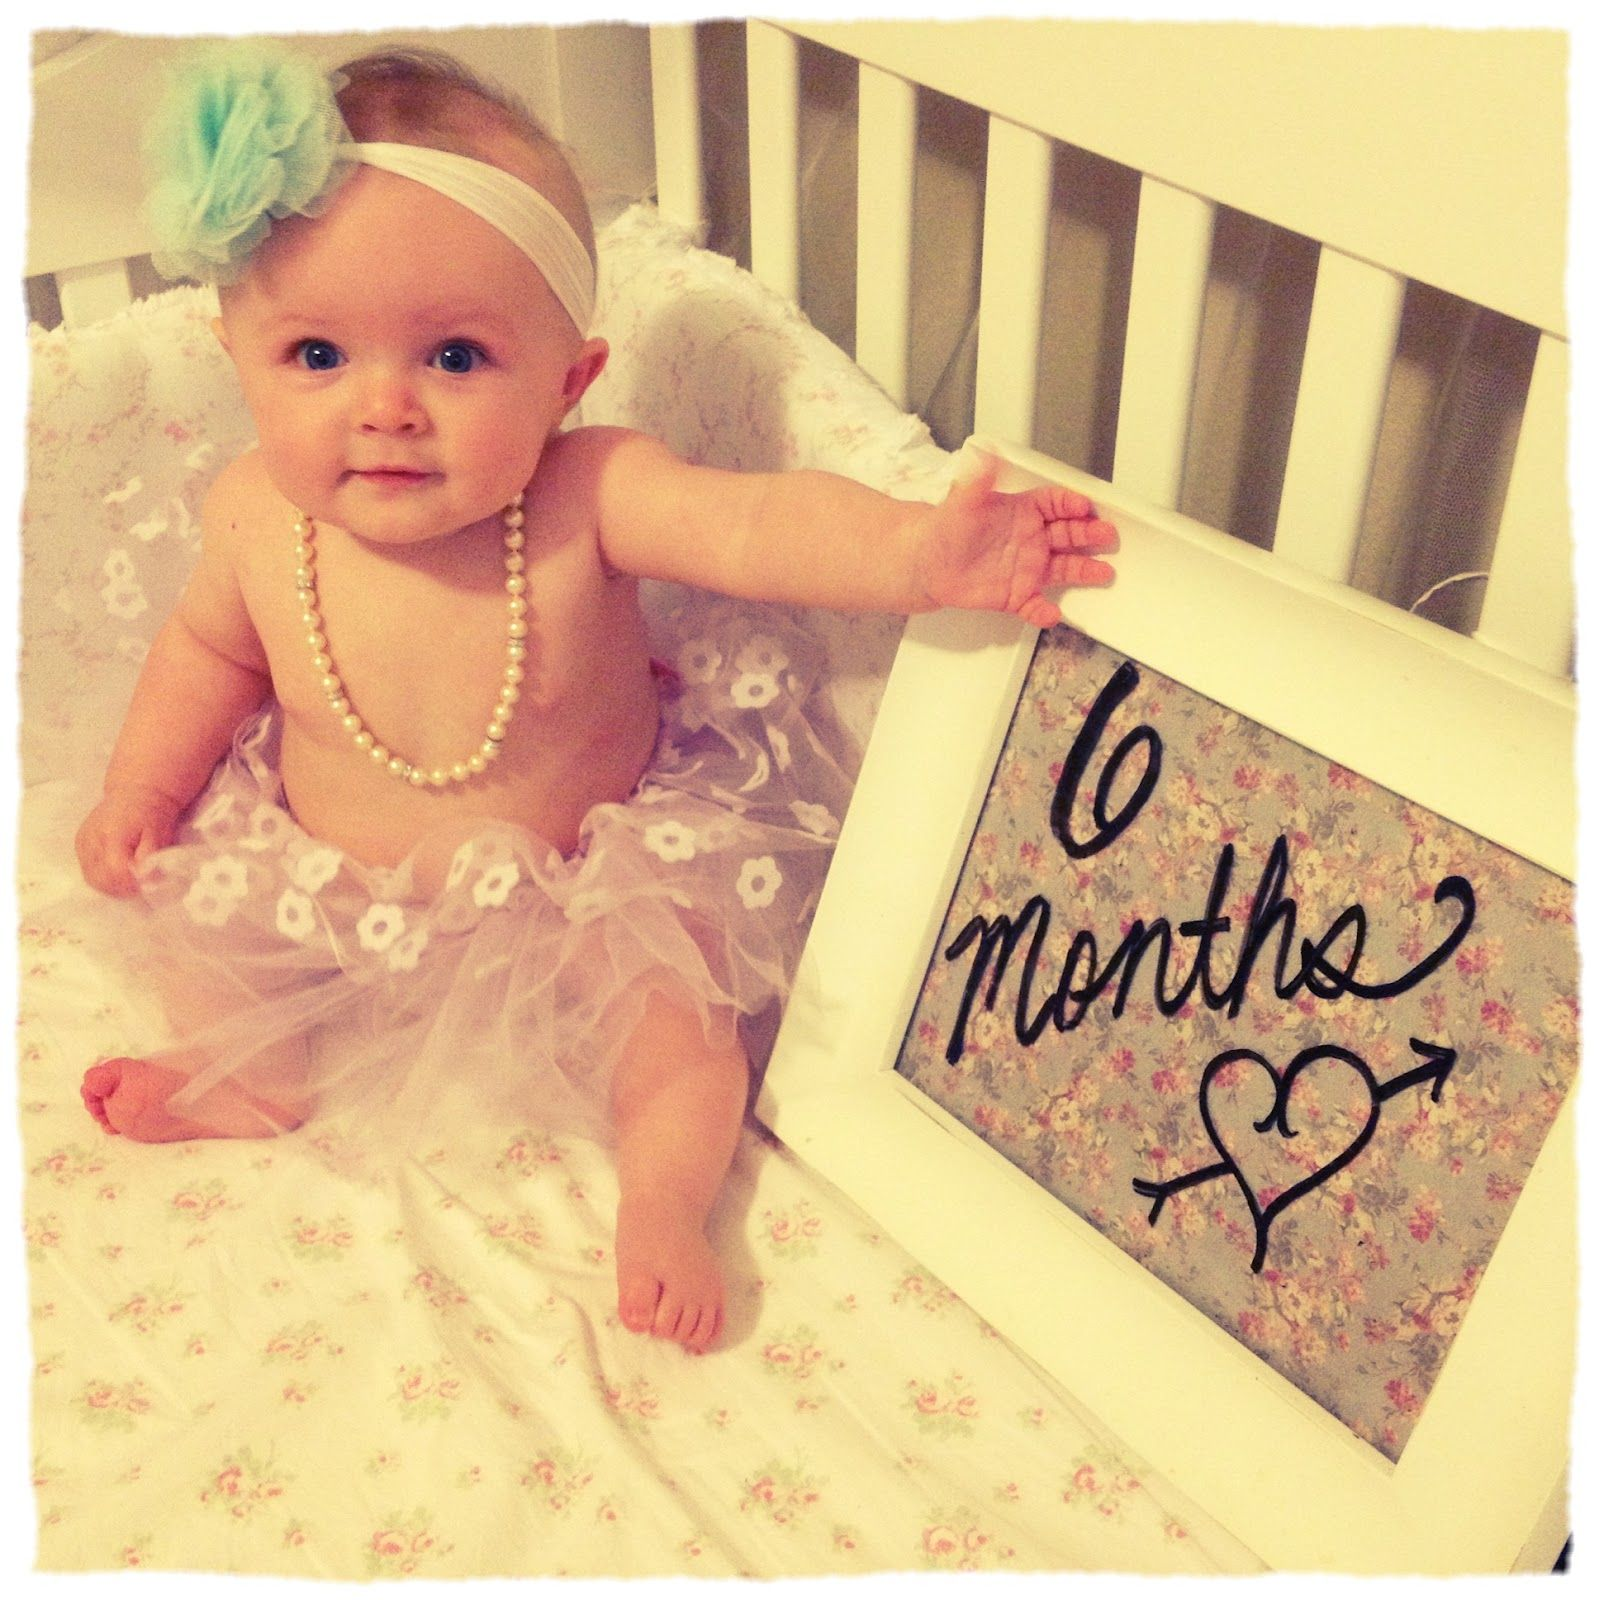 6 month baby girl photo shoot ideas google search